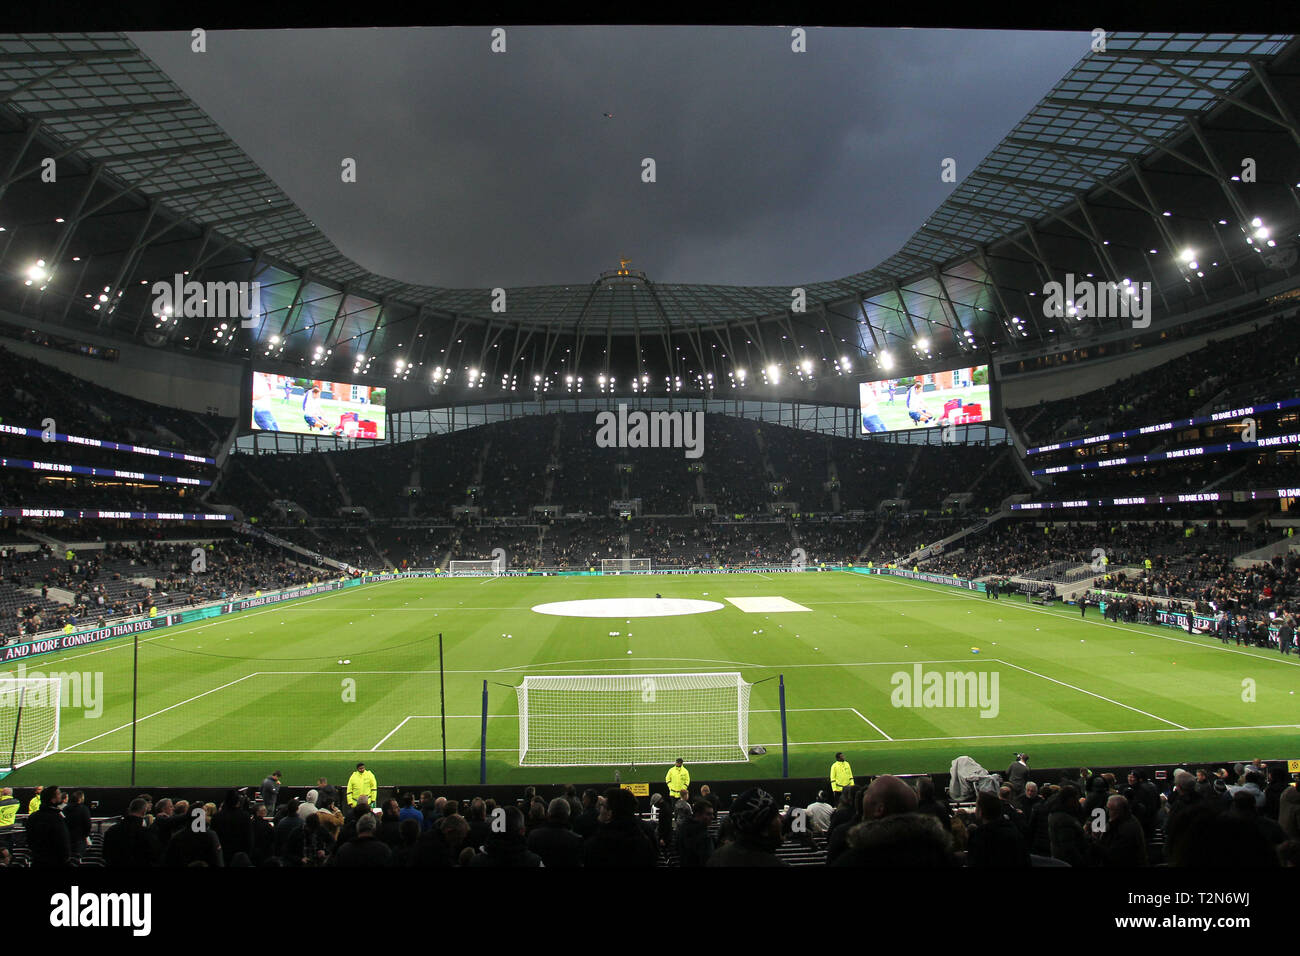 London, UK. 3rd Apr, 2019. Tottenham Hotspur Stadium, London, UK. 3rd Apr 2019. General View during the Premier League match between Tottenham Hotspur and Crystal Palace at Tottenham Hotspur Stadium on April 3rd 2019 in London, England. (Photo by Paul Raffety/phcimages.com) Credit: PHC Images/Alamy Live News Stock Photo